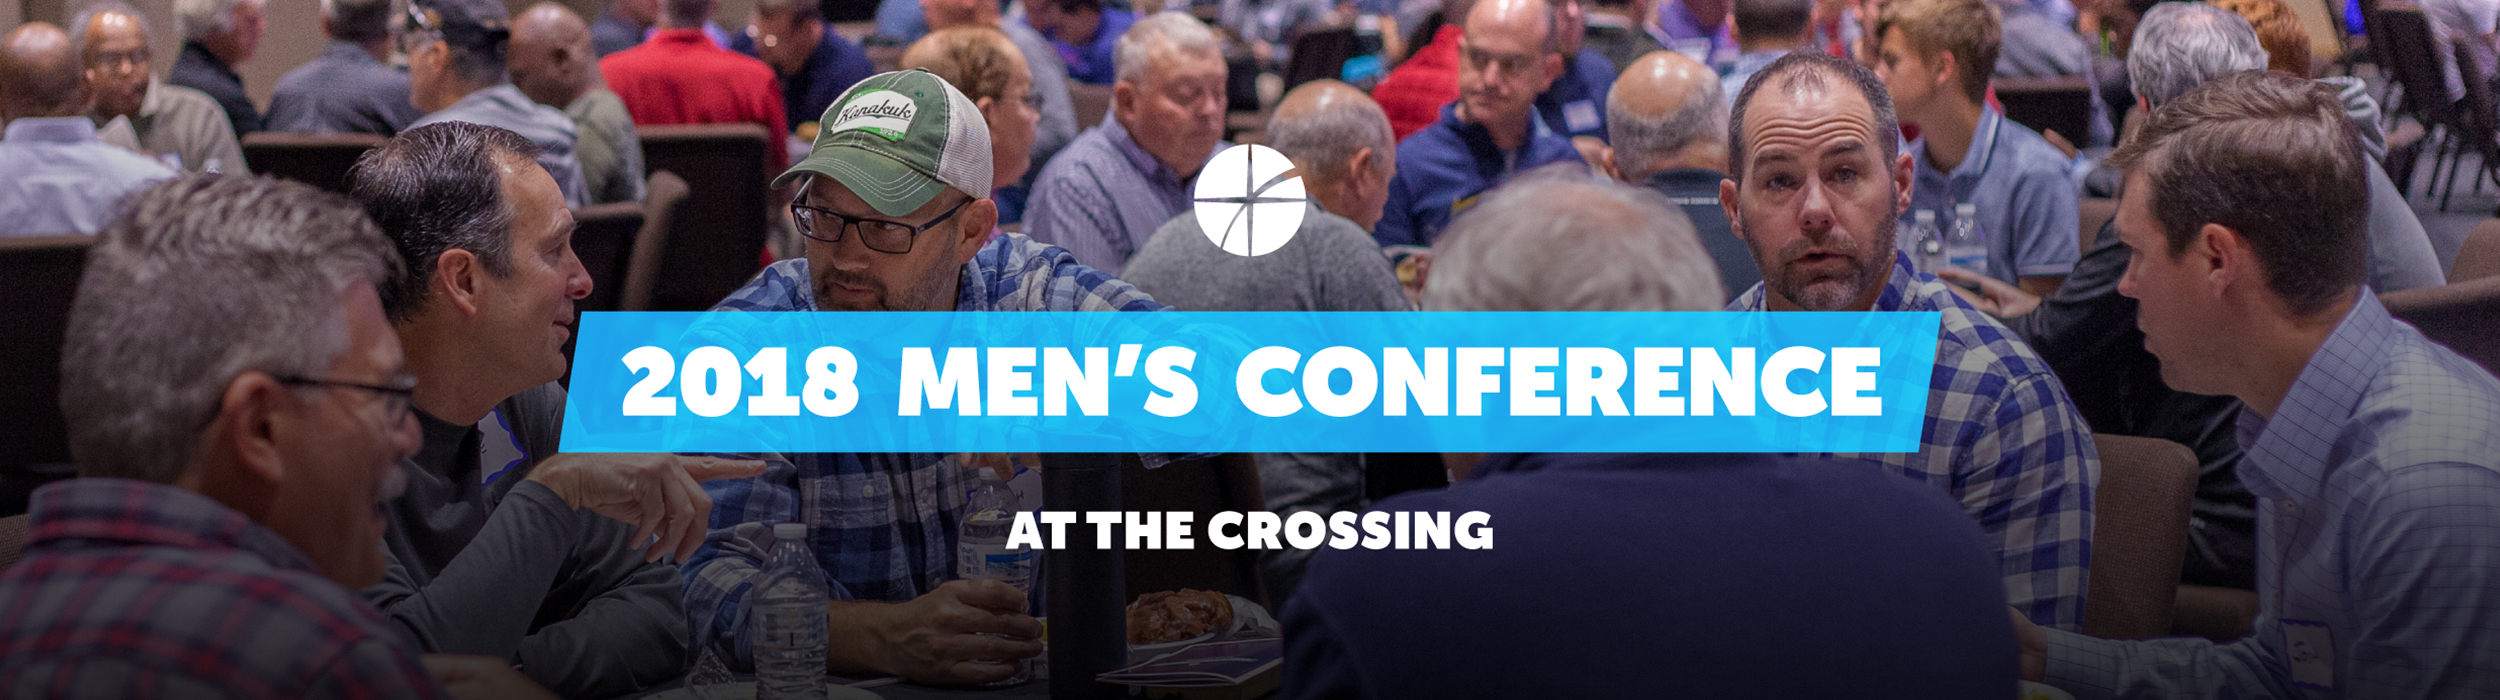 Men's Conference 2018